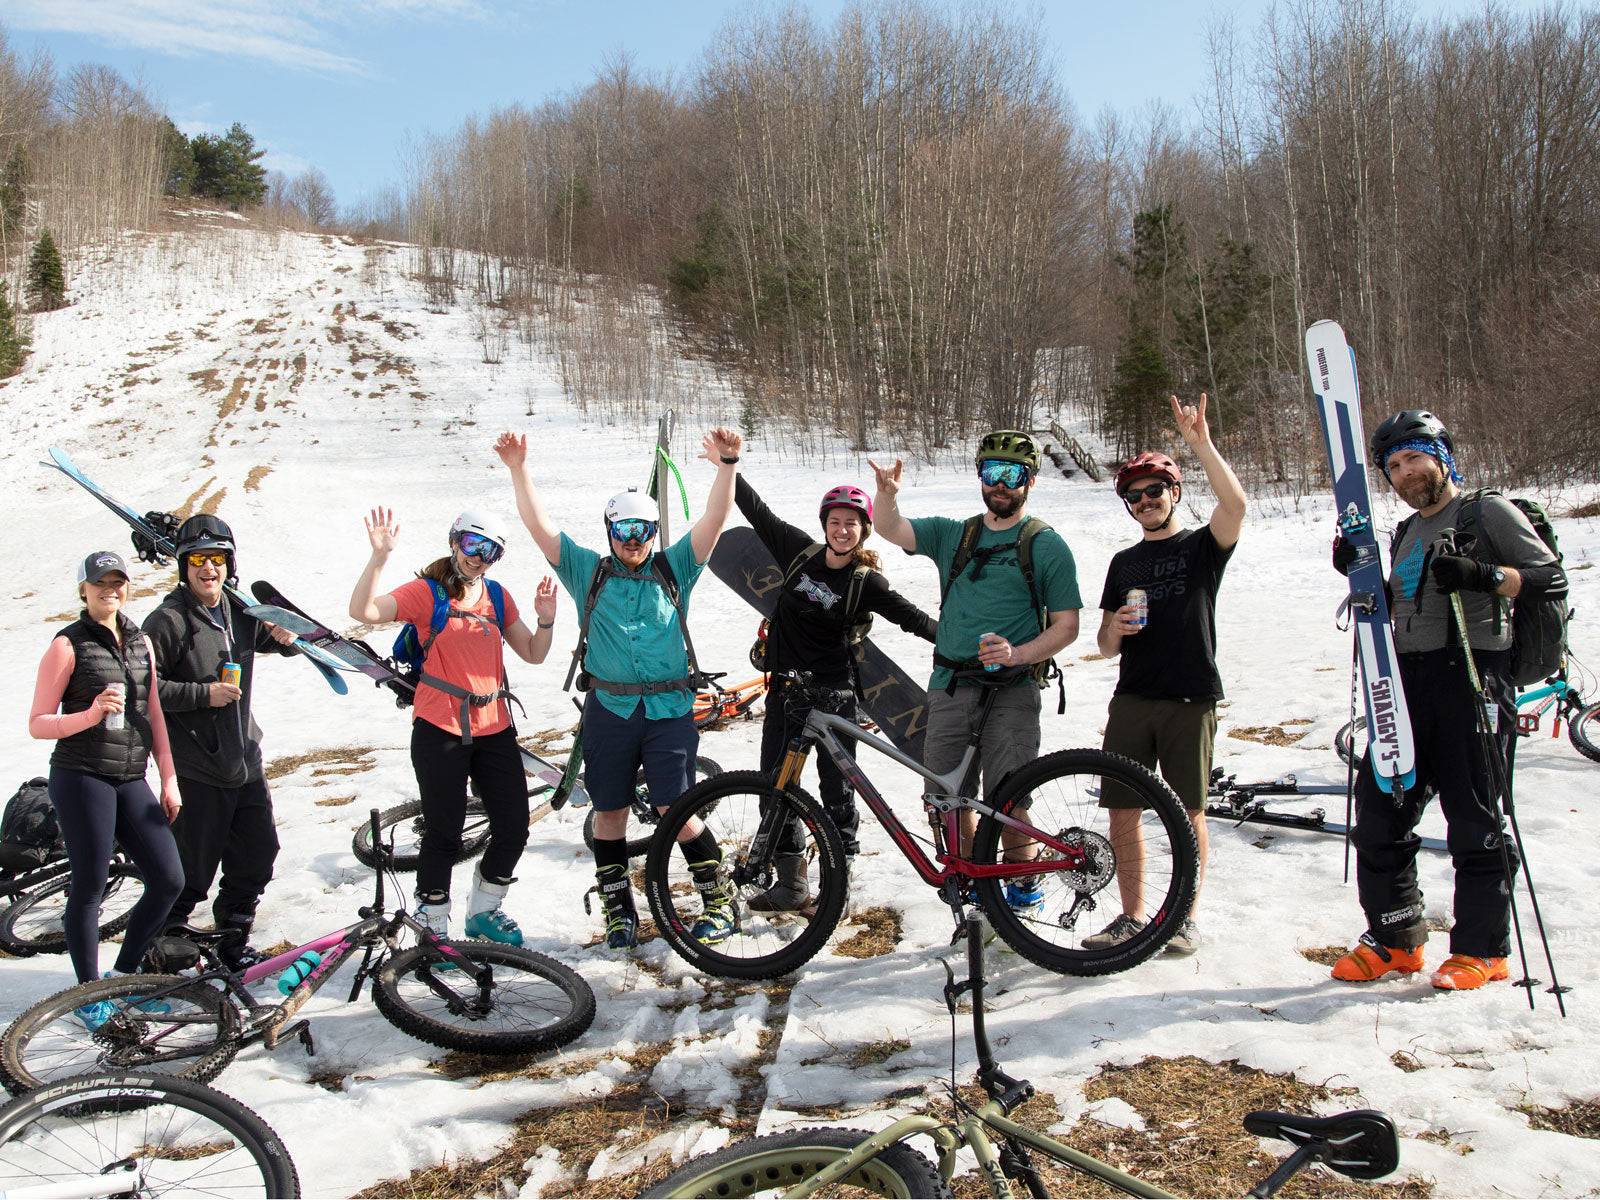 Video: Last Strip of Winter - Spring Skiing + Biking